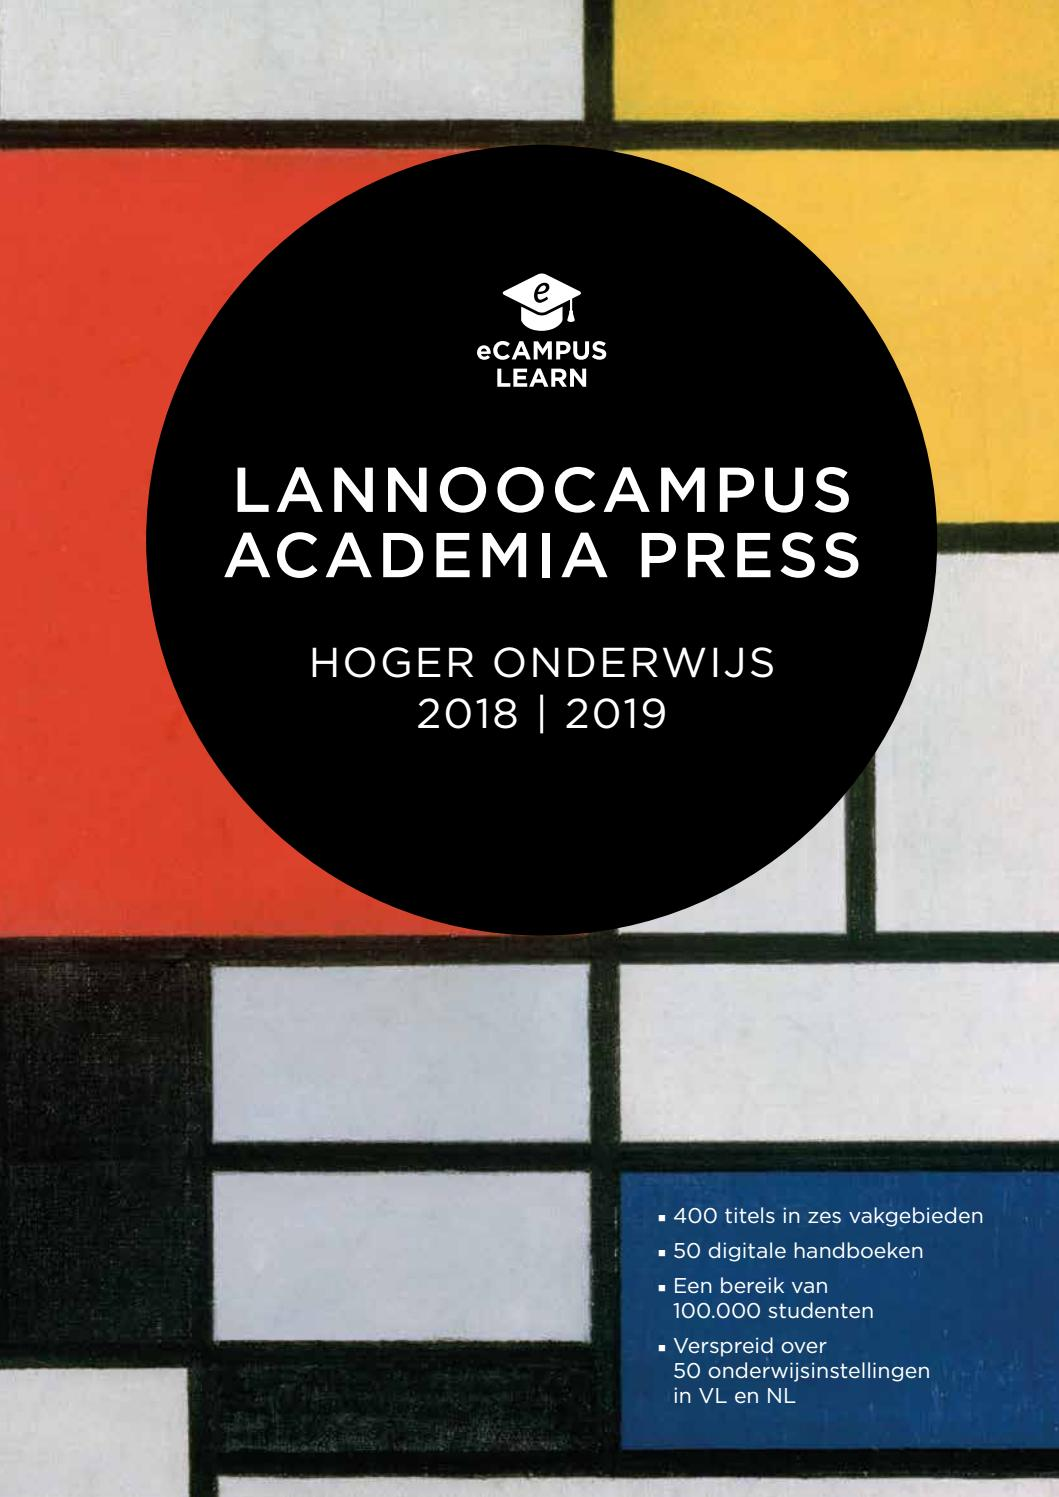 lannoocampus academia press